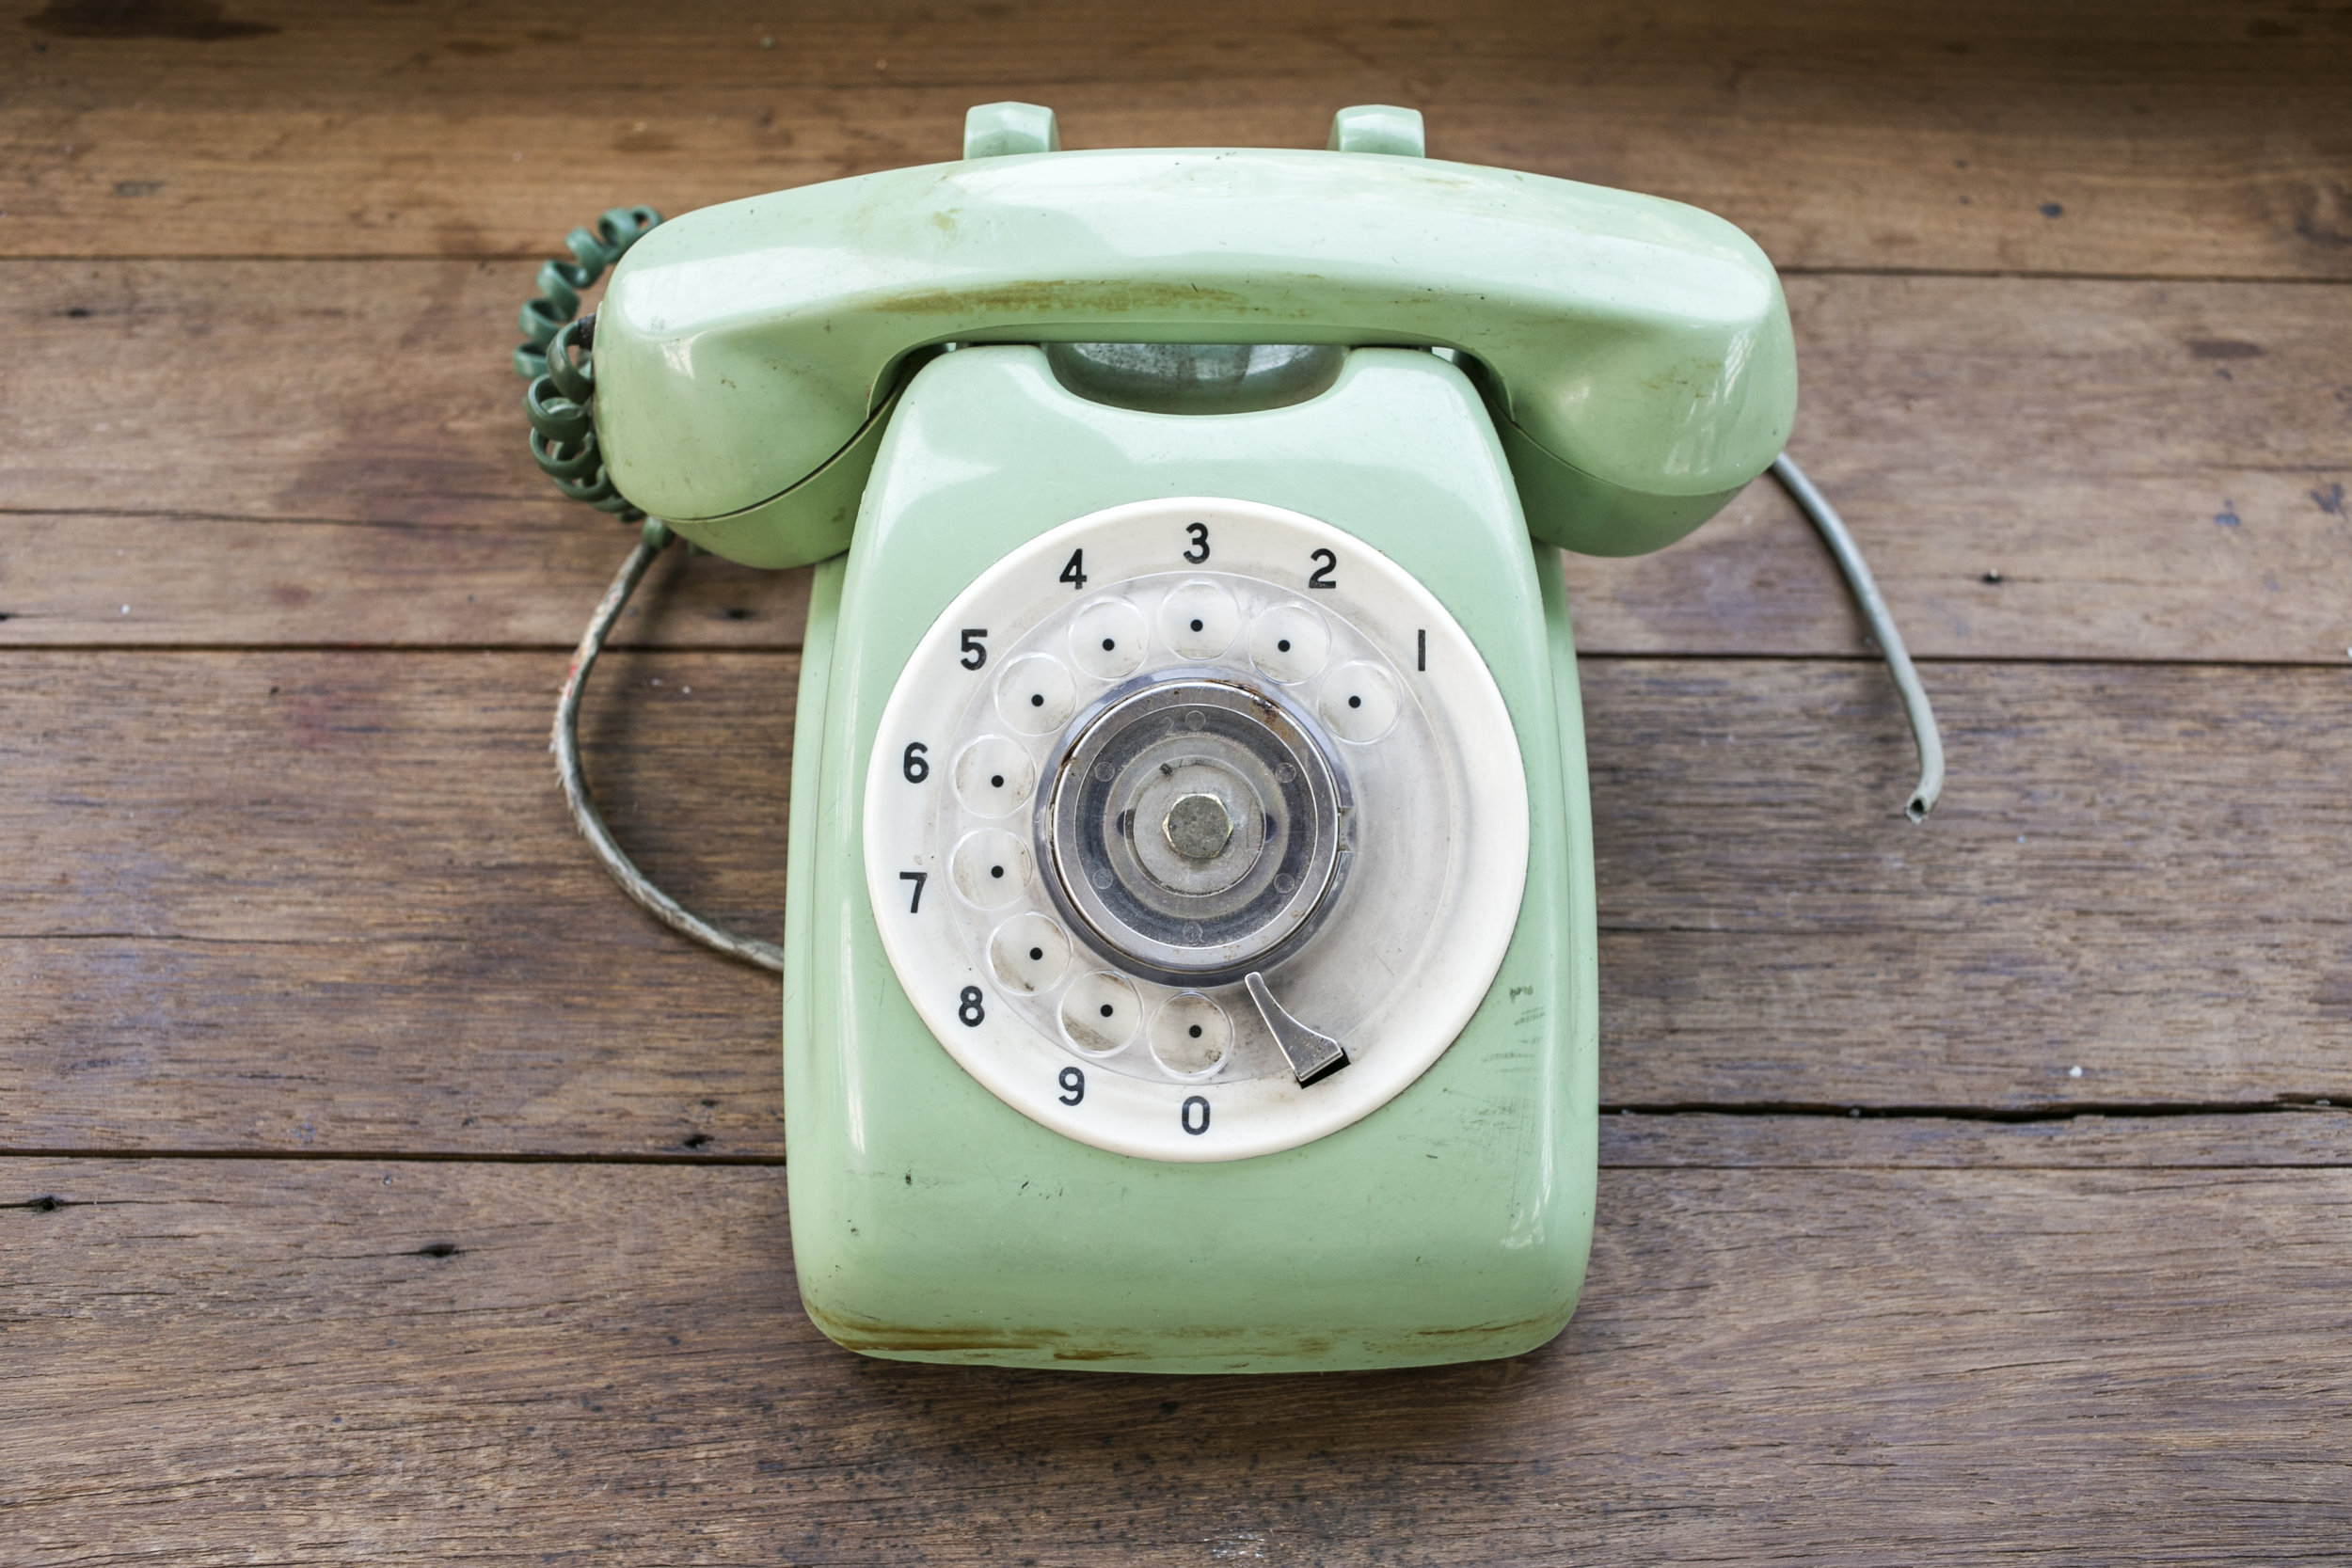 green-vintage-telephone-on-brown-wood-desk-background_BwJxPaeu3Gx.jpg